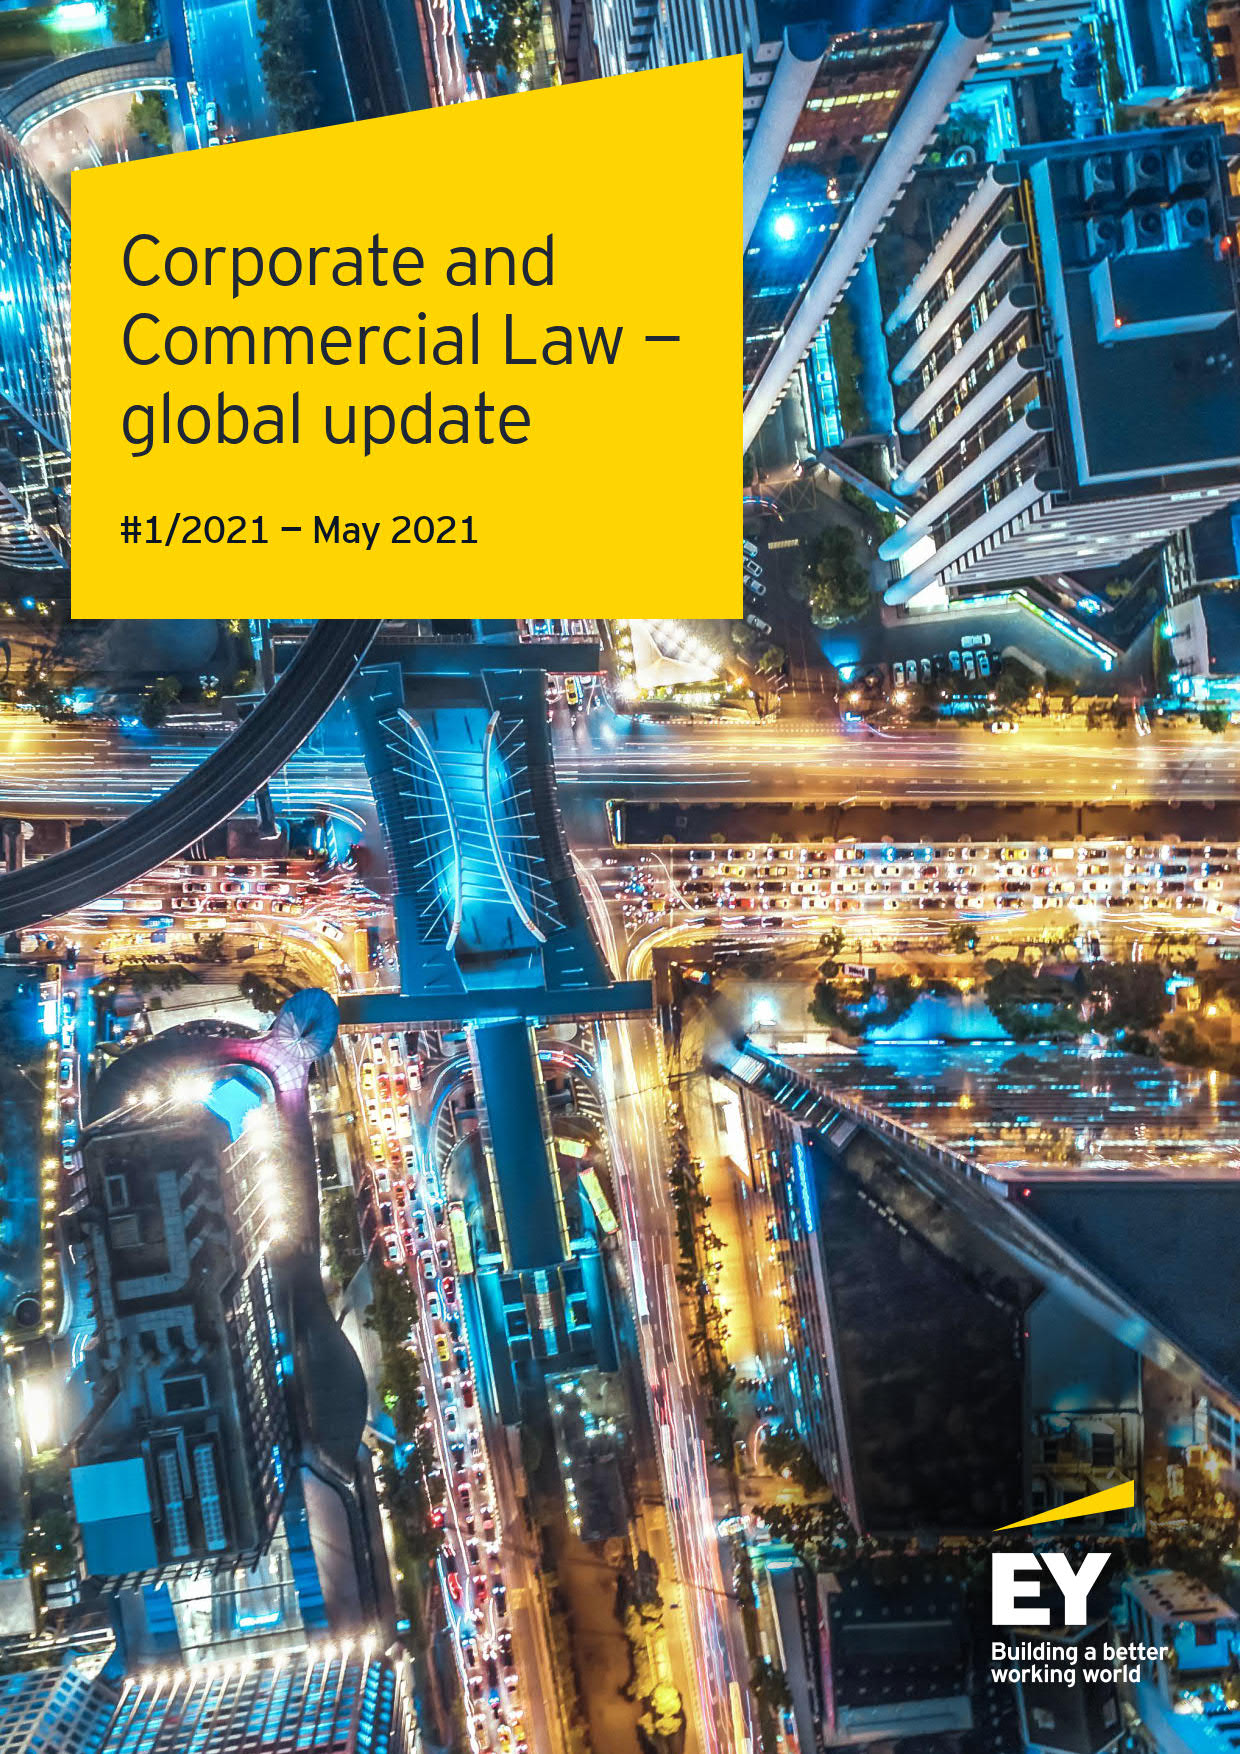 Corporate and Commercial Law - global update No 1/2021